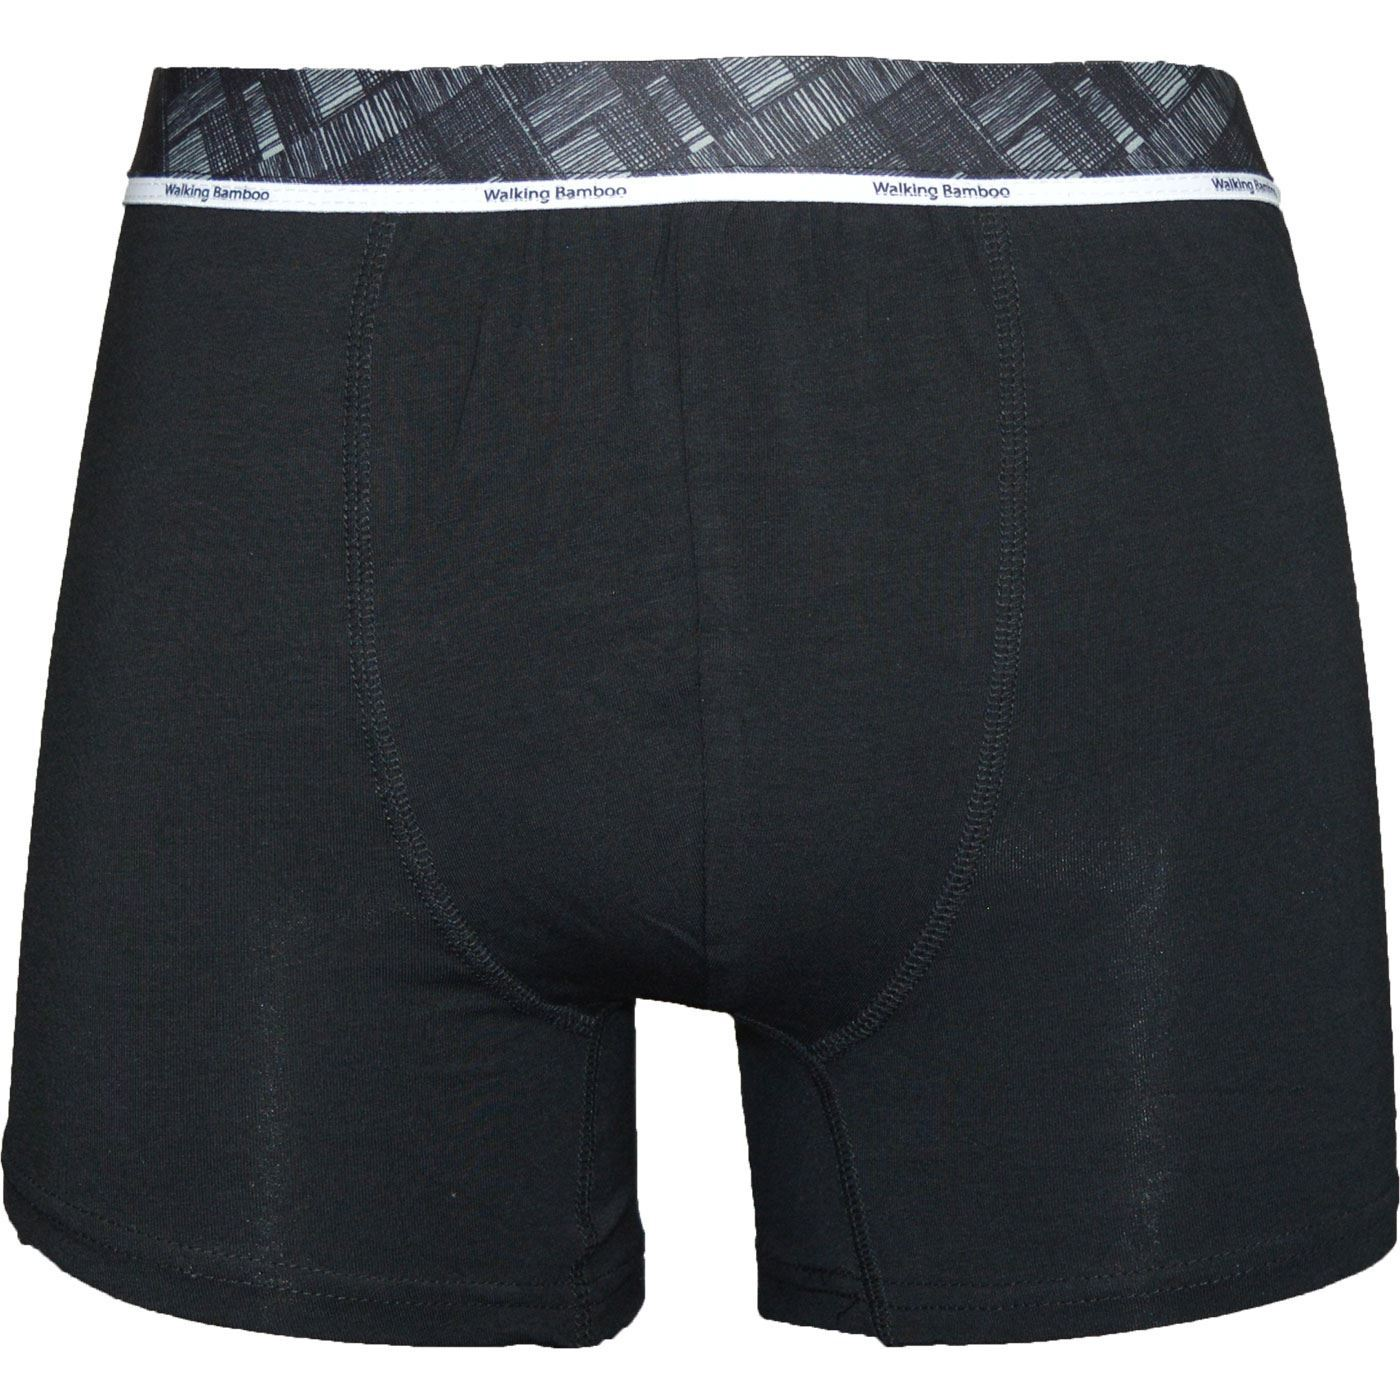 Picture of 2-Pack Boxershorts Bamboo